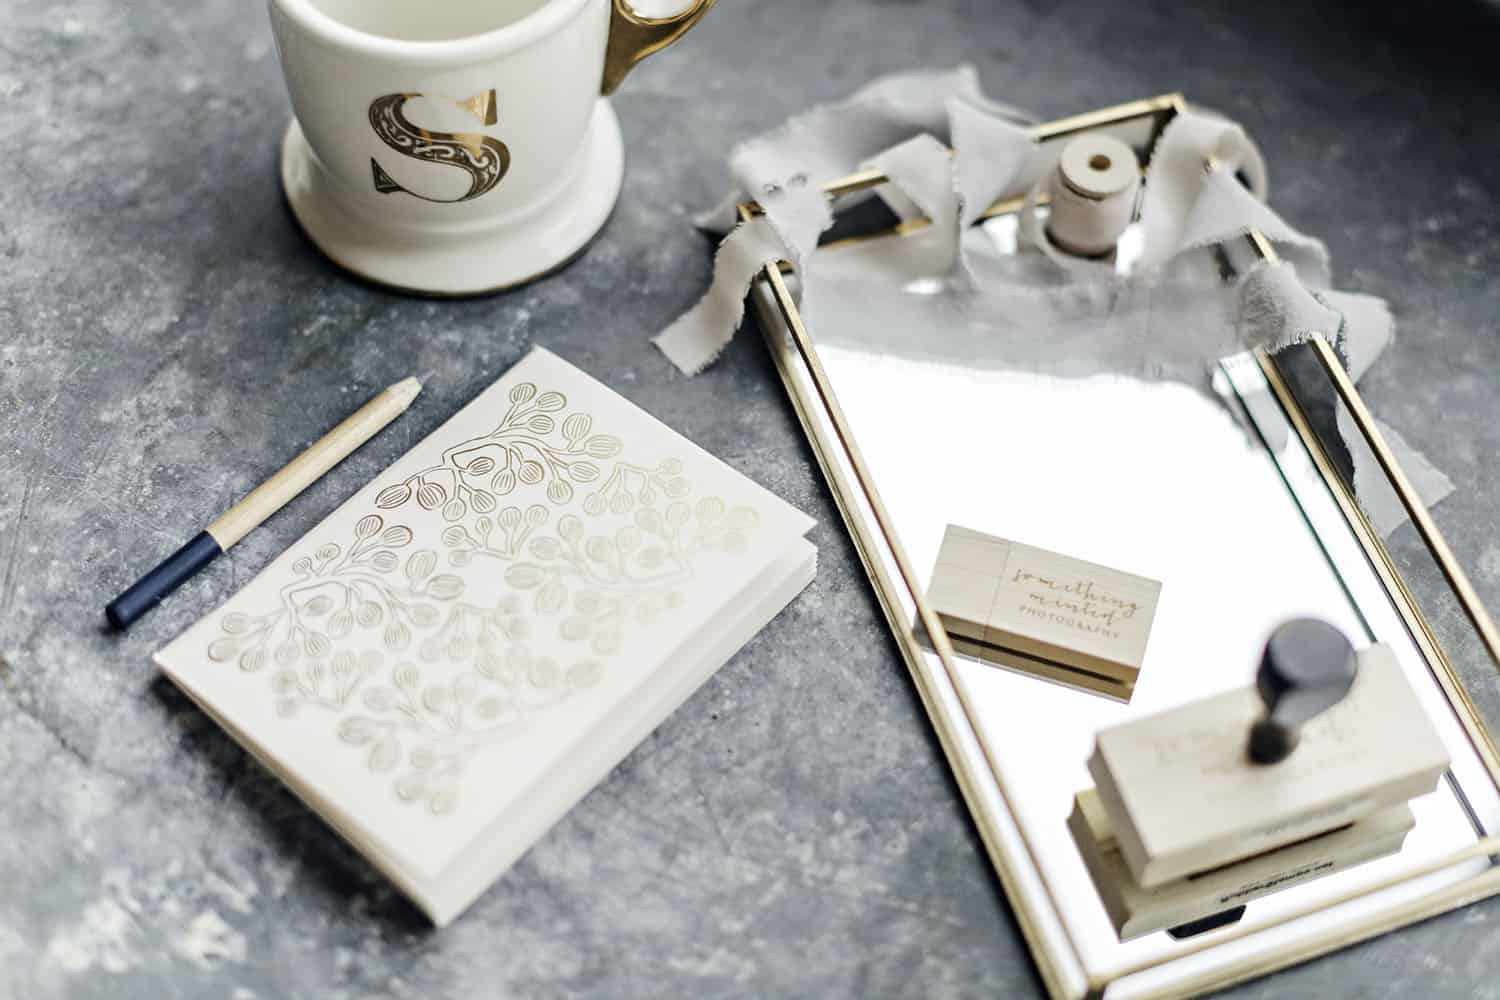 A gray marbled workspace is laid out with a journal, coffee mug, and other desk accessories